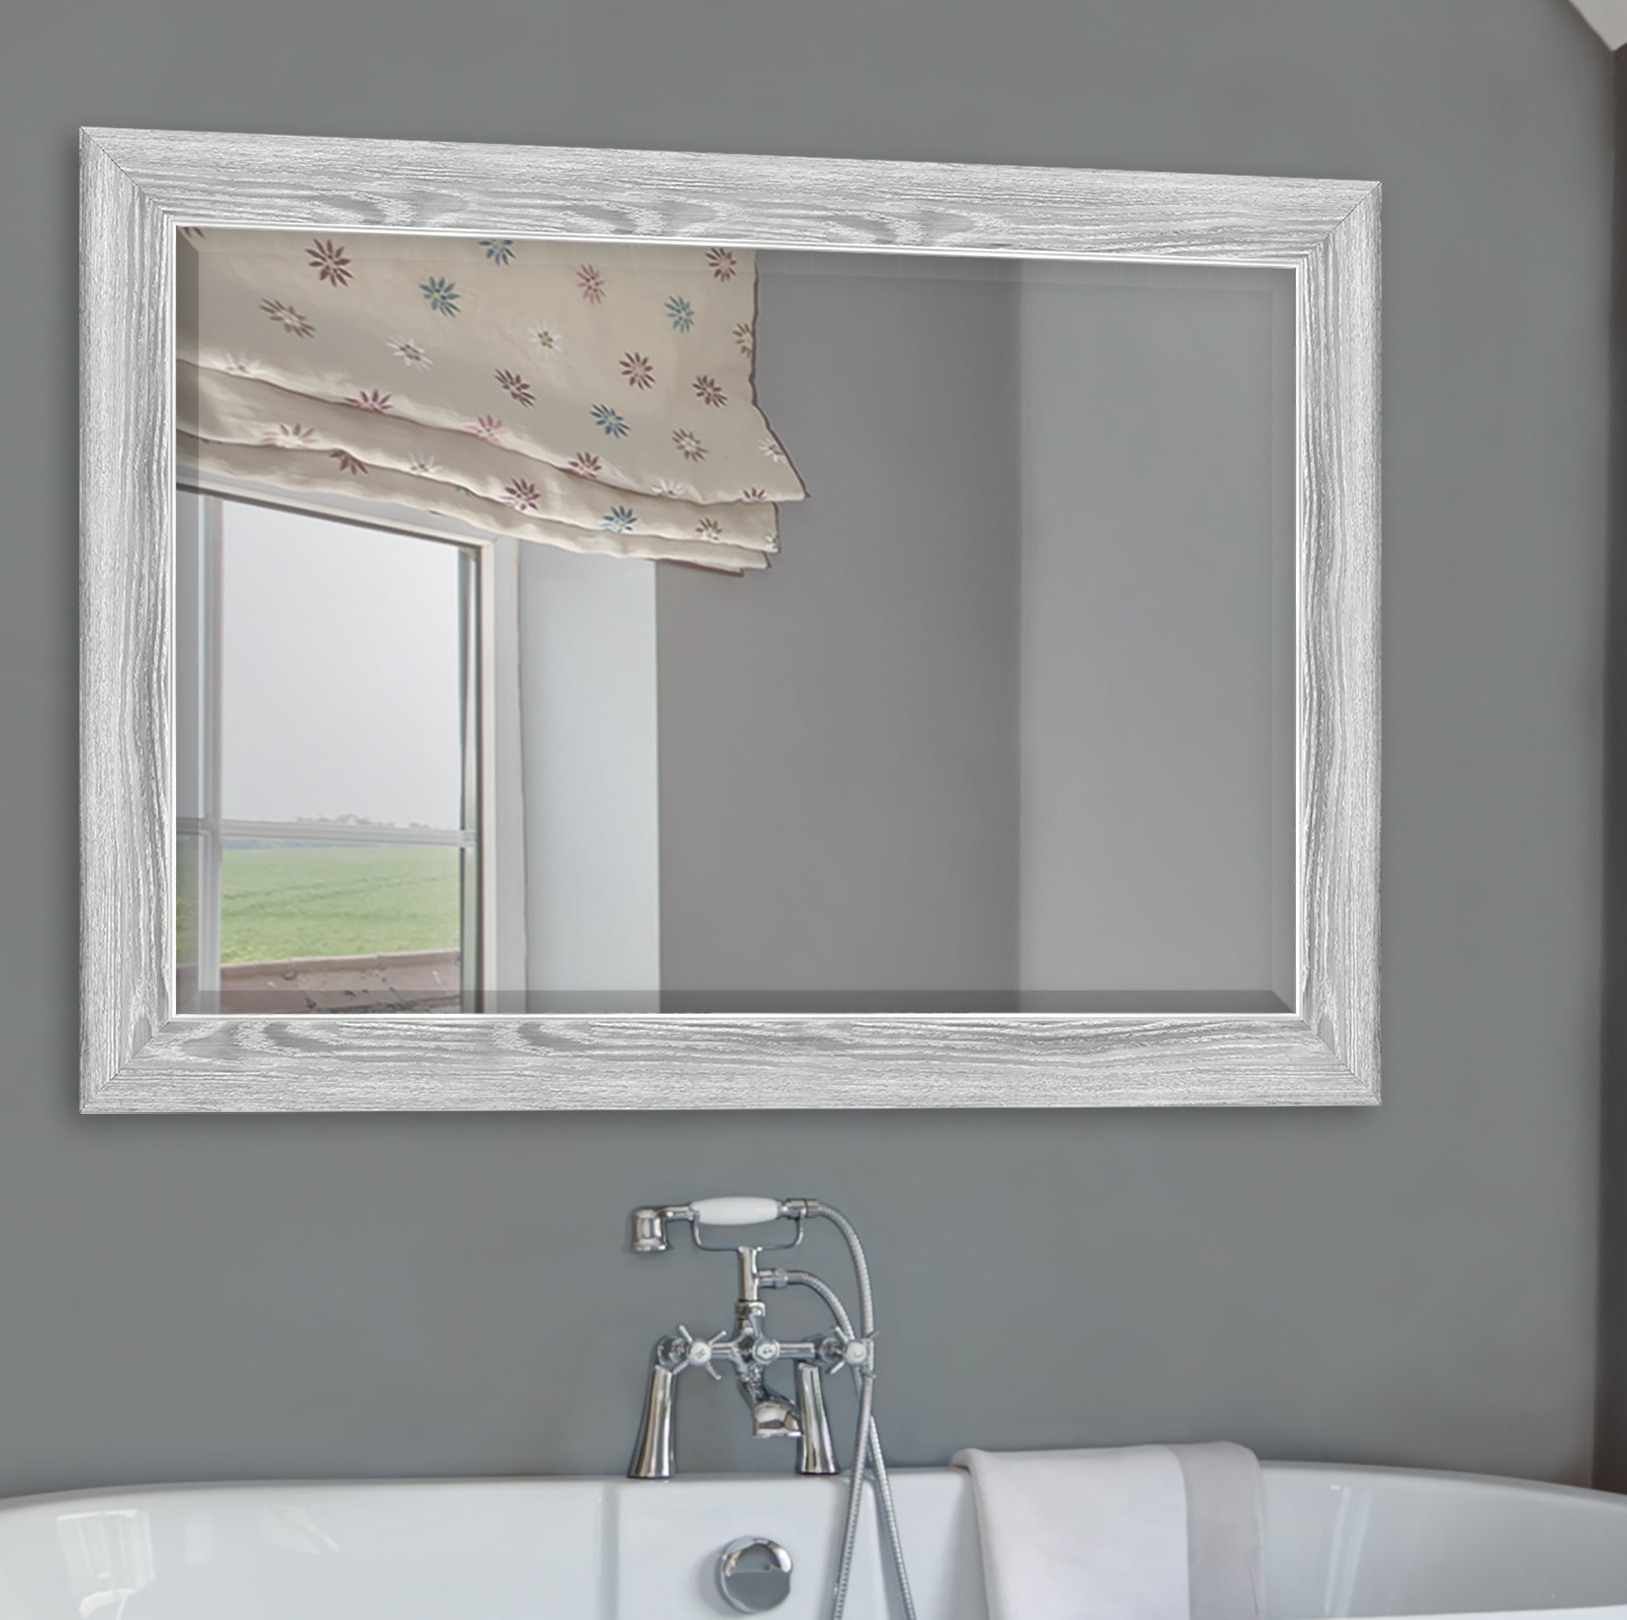 2019 Hilde Traditional Beveled Bathroom Mirrors Intended For Yeung Curvature Bathroom/vanity Mirror (View 11 of 20)